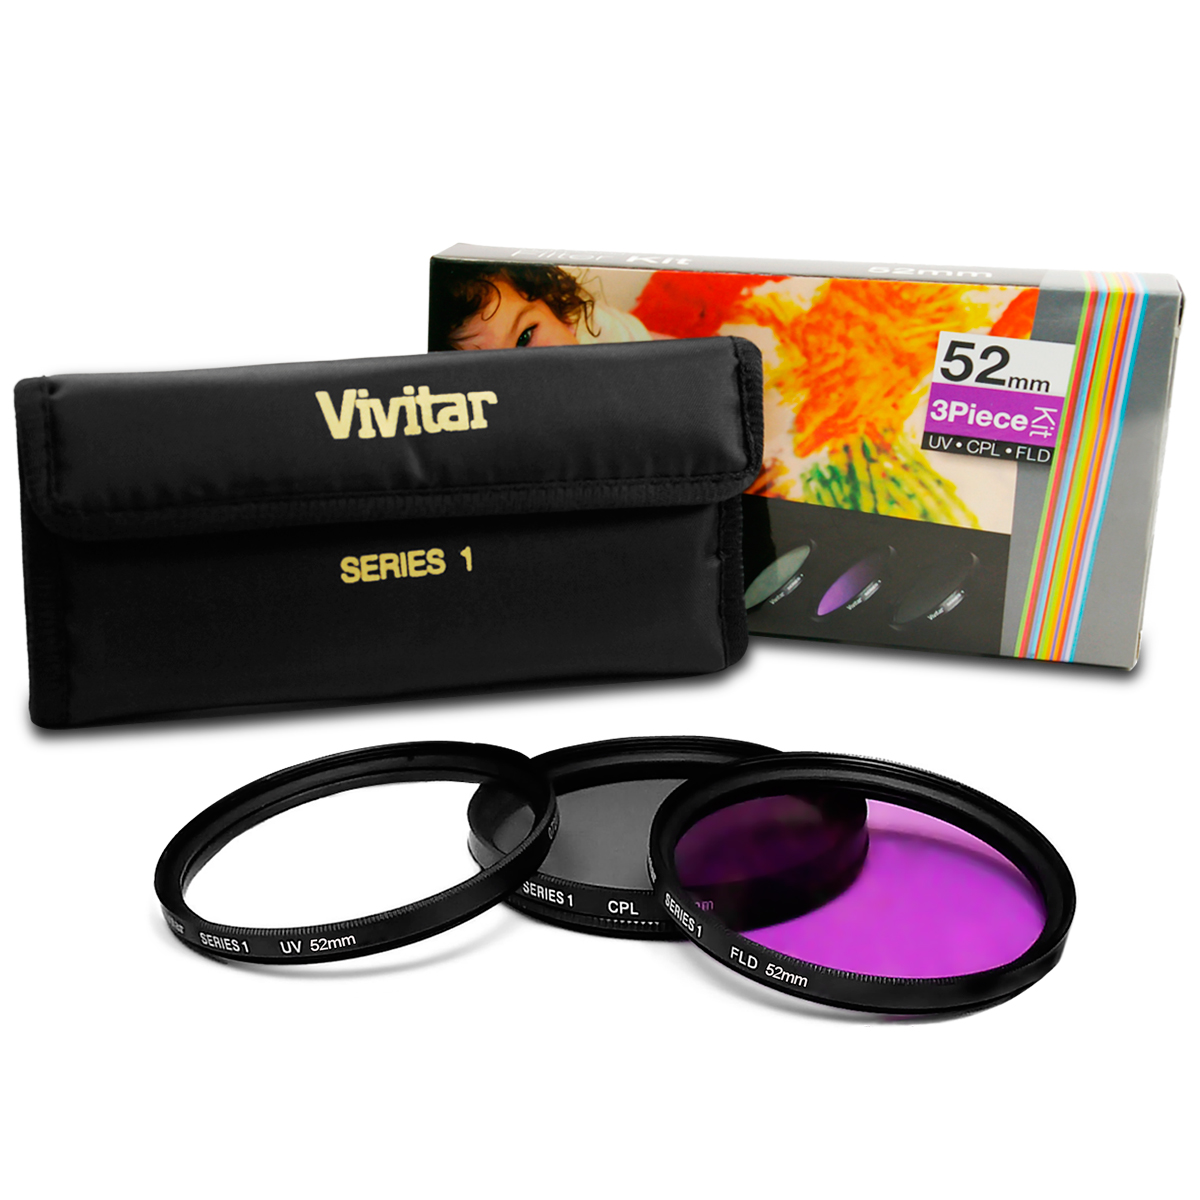 vivitar 52mm uv cpl fld filter kit accessories bundle. Black Bedroom Furniture Sets. Home Design Ideas